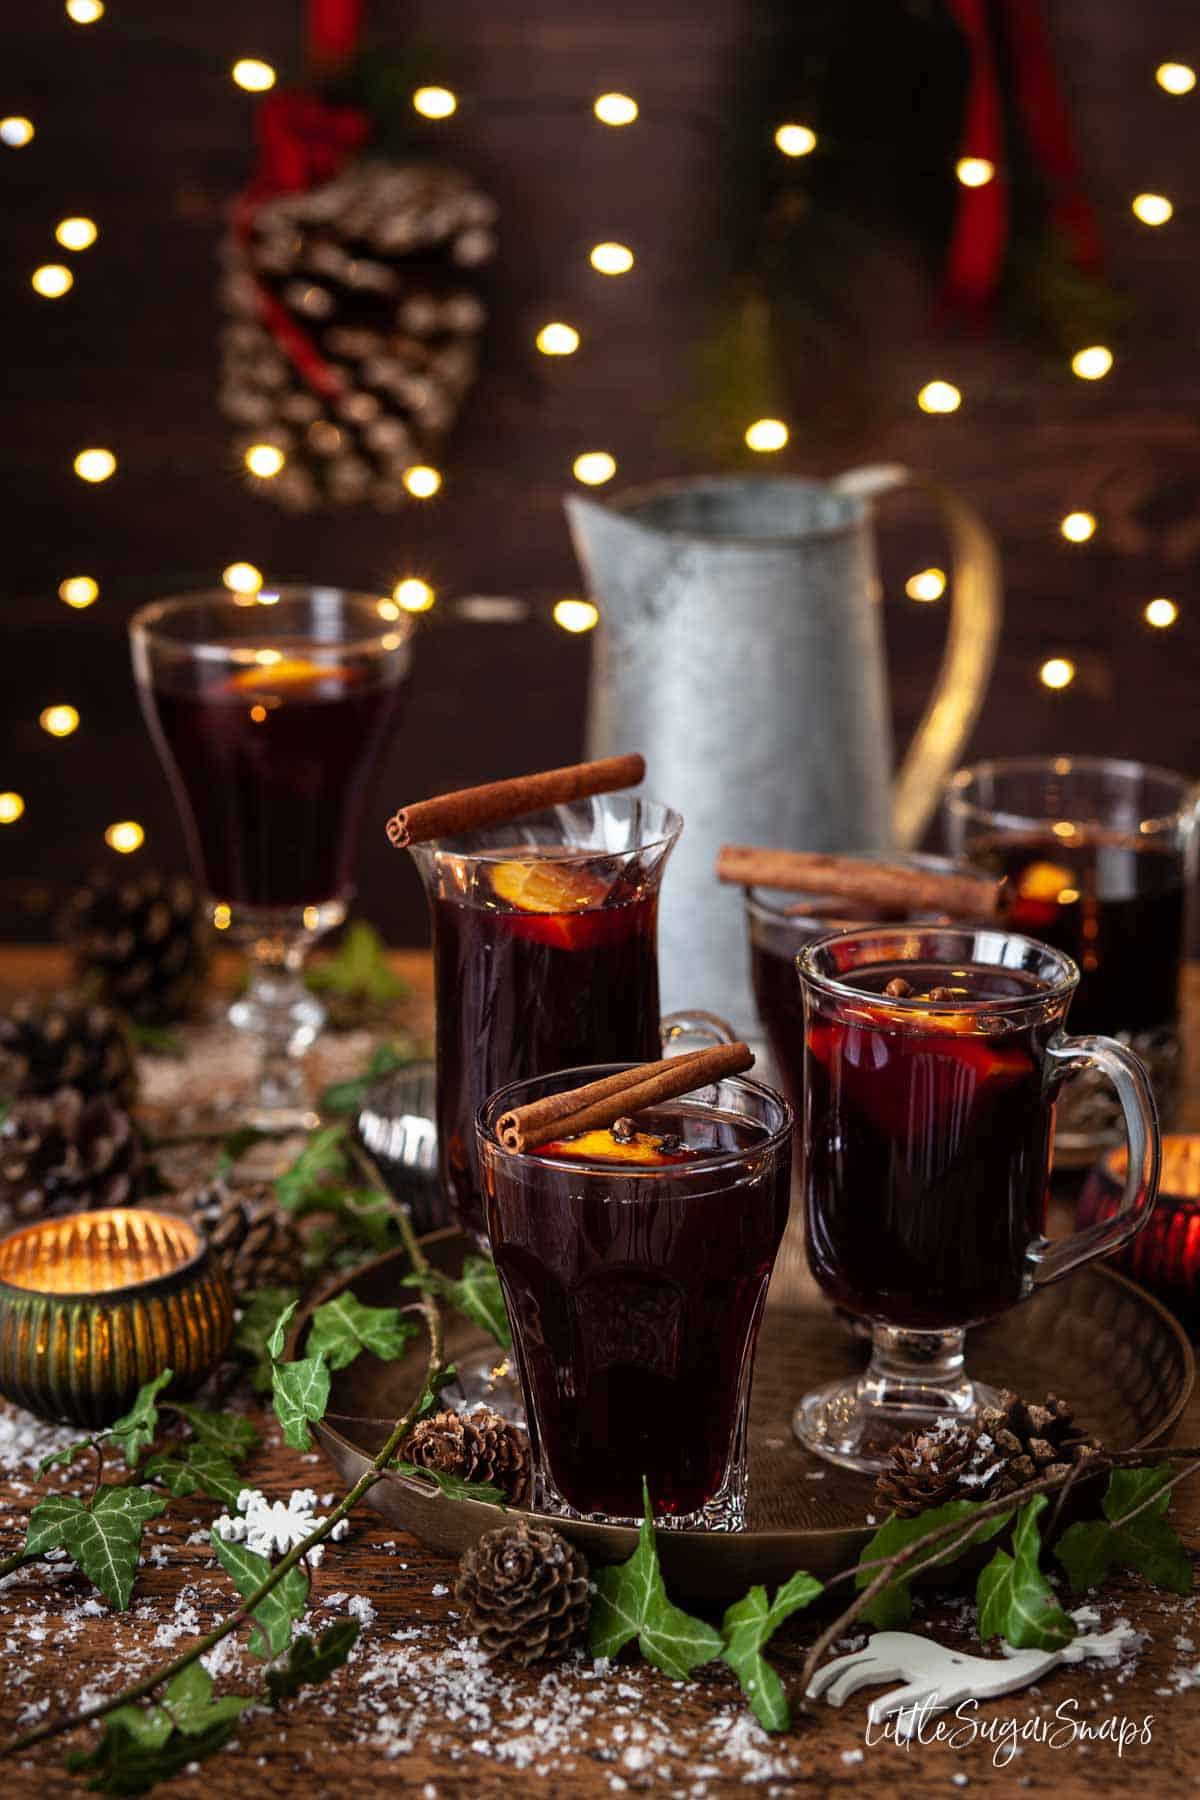 Glasses of vin brulé topped with cinnamon sticks and orange slices